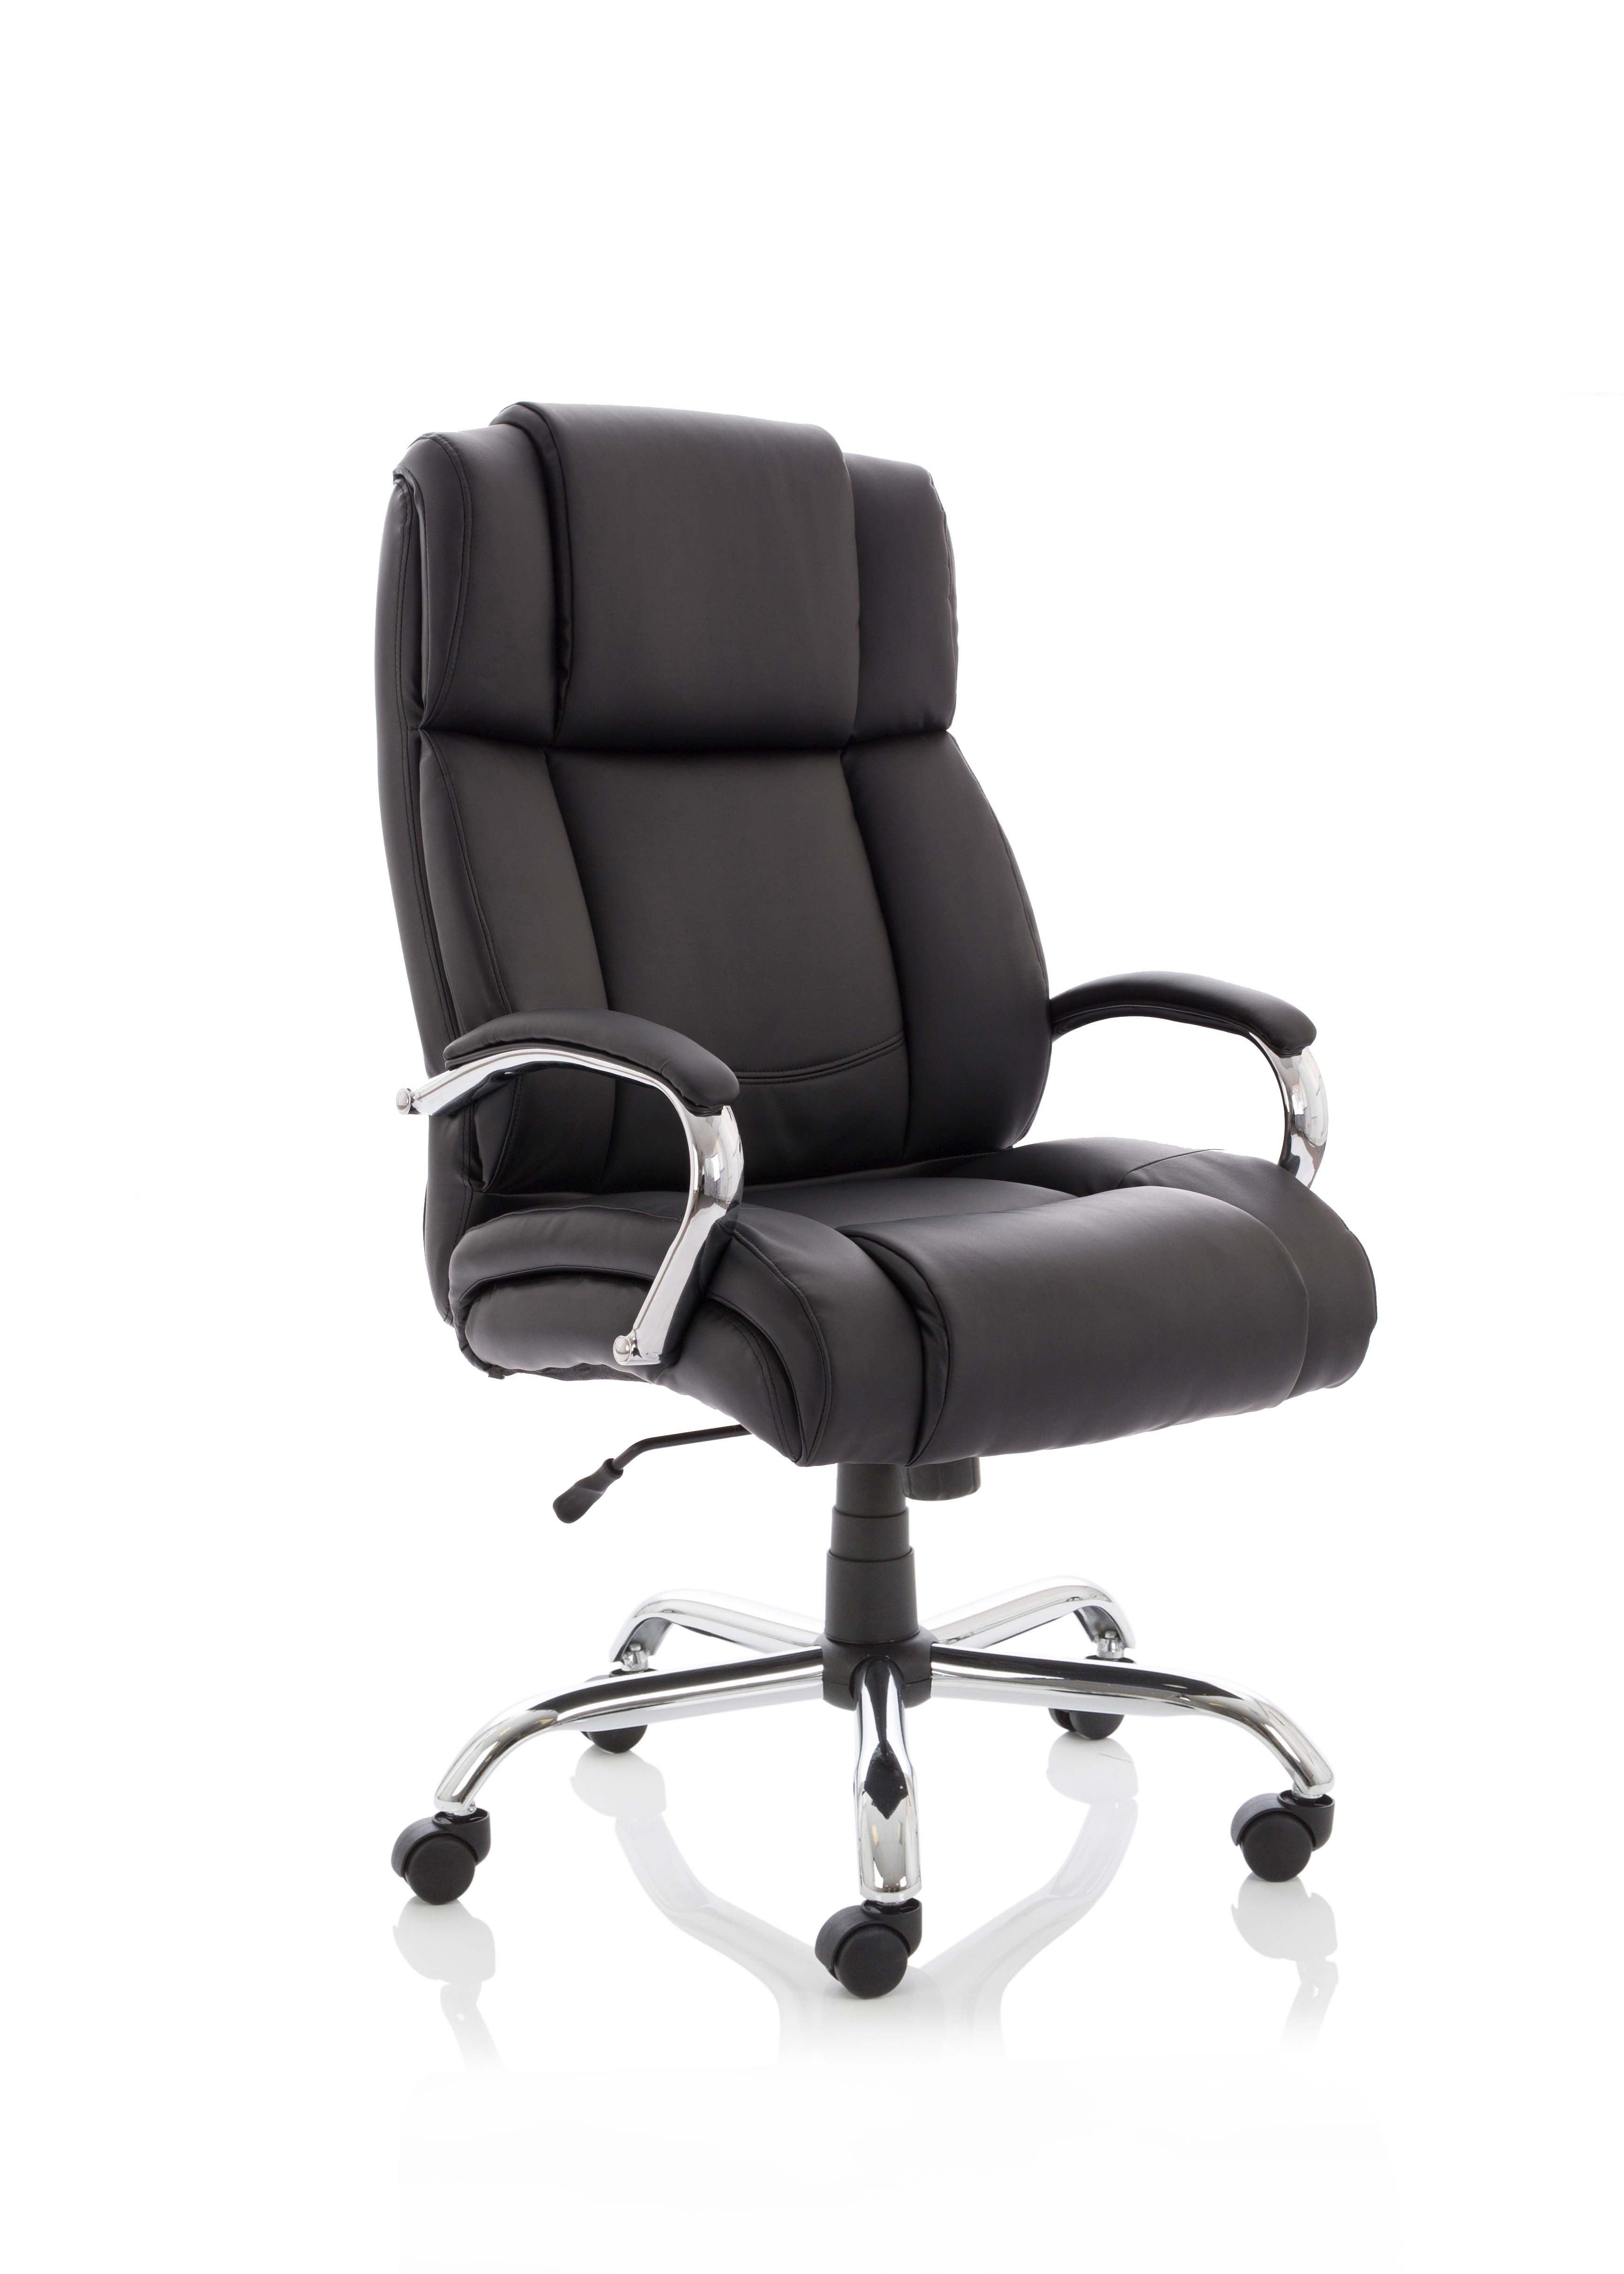 New Super Heavy Duty Chair!